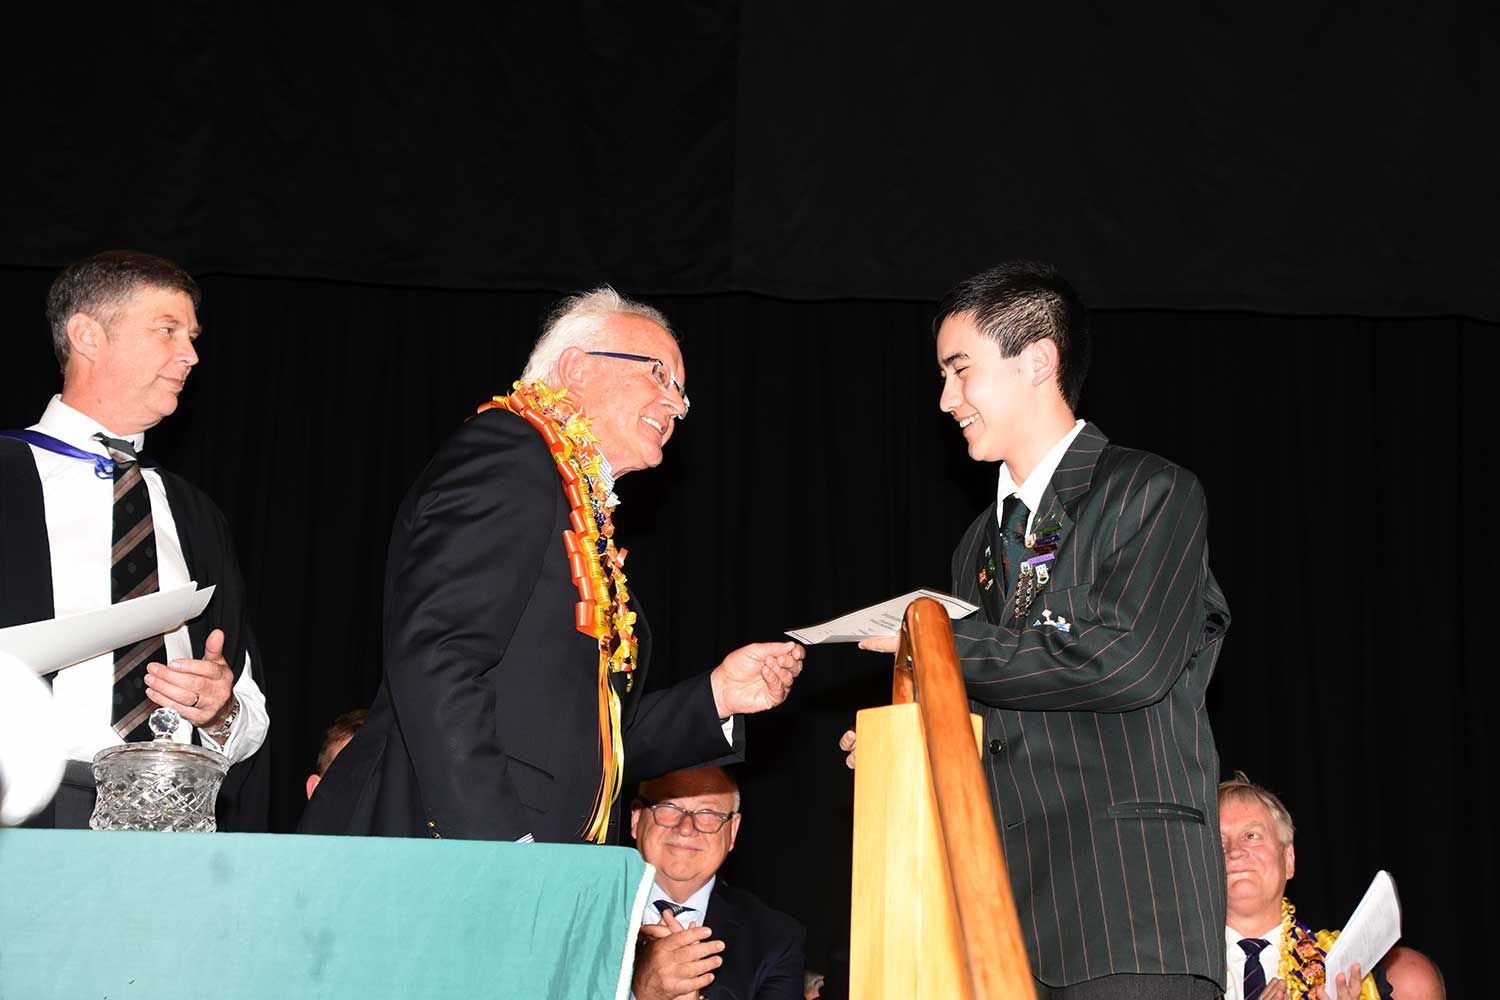 Ryan Parkinson, Dilworth Prize Giving 2016